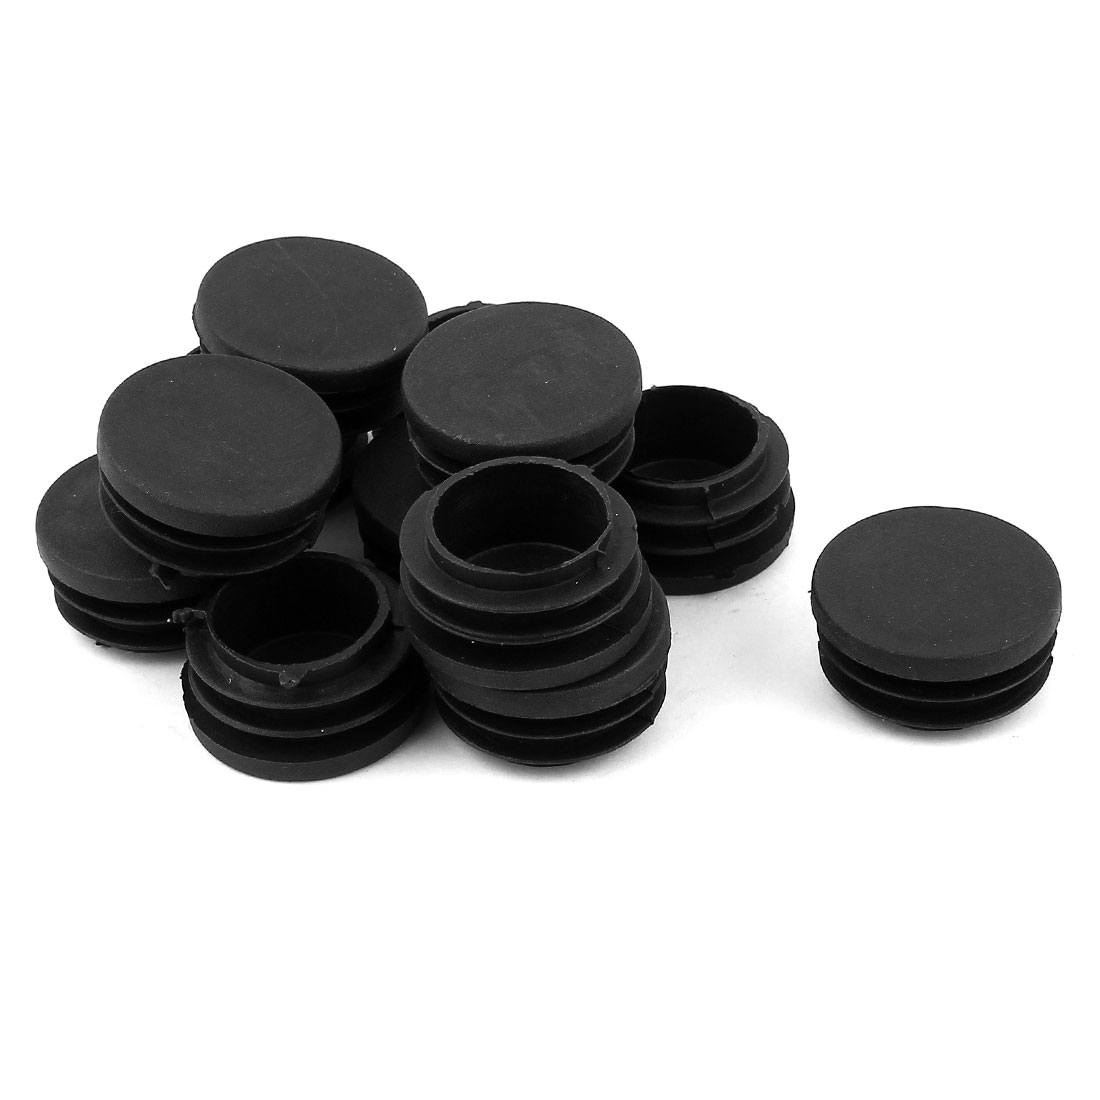 Chair Table 32mm Round Shape Plastic Blanking End Cap Tubing Tube Insert 12 Pcs